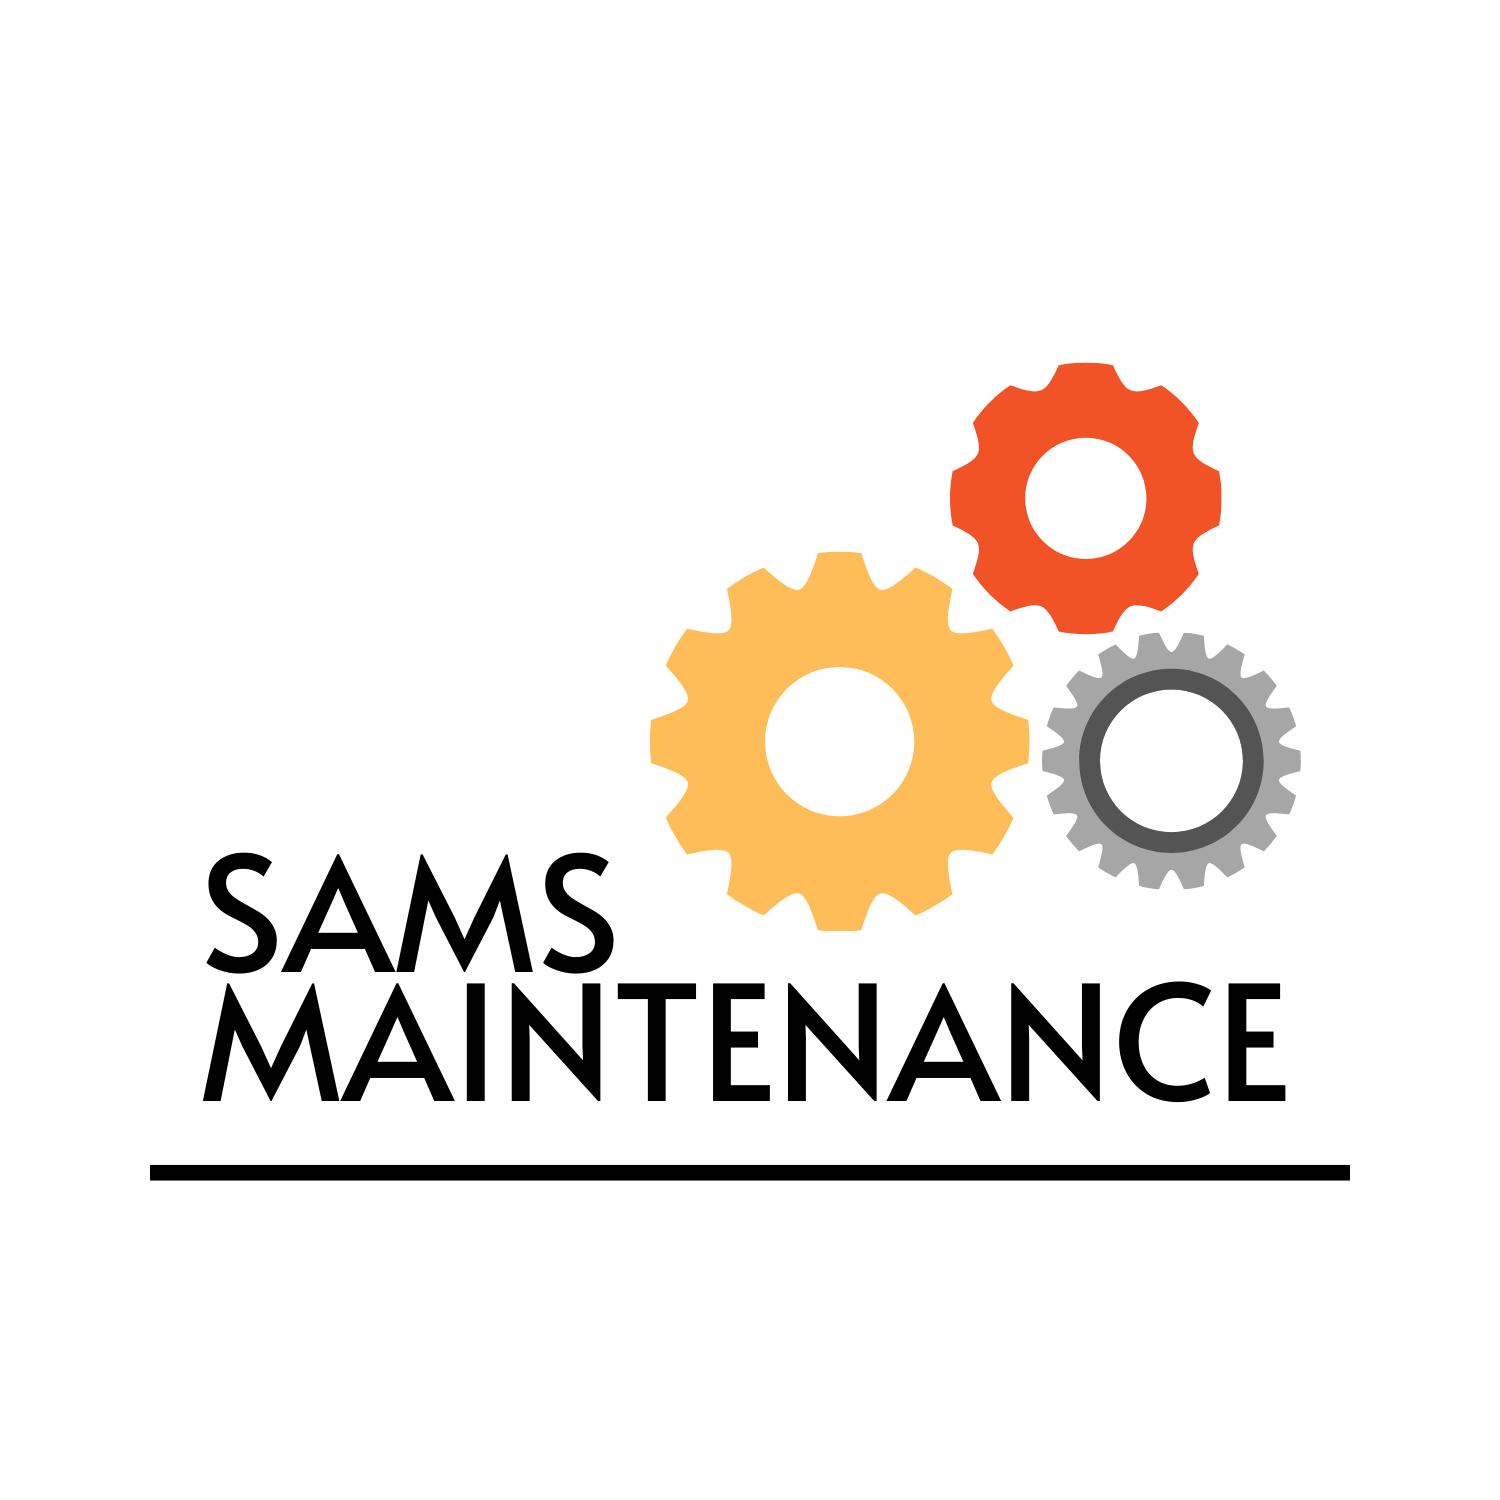 Sams Maintenance